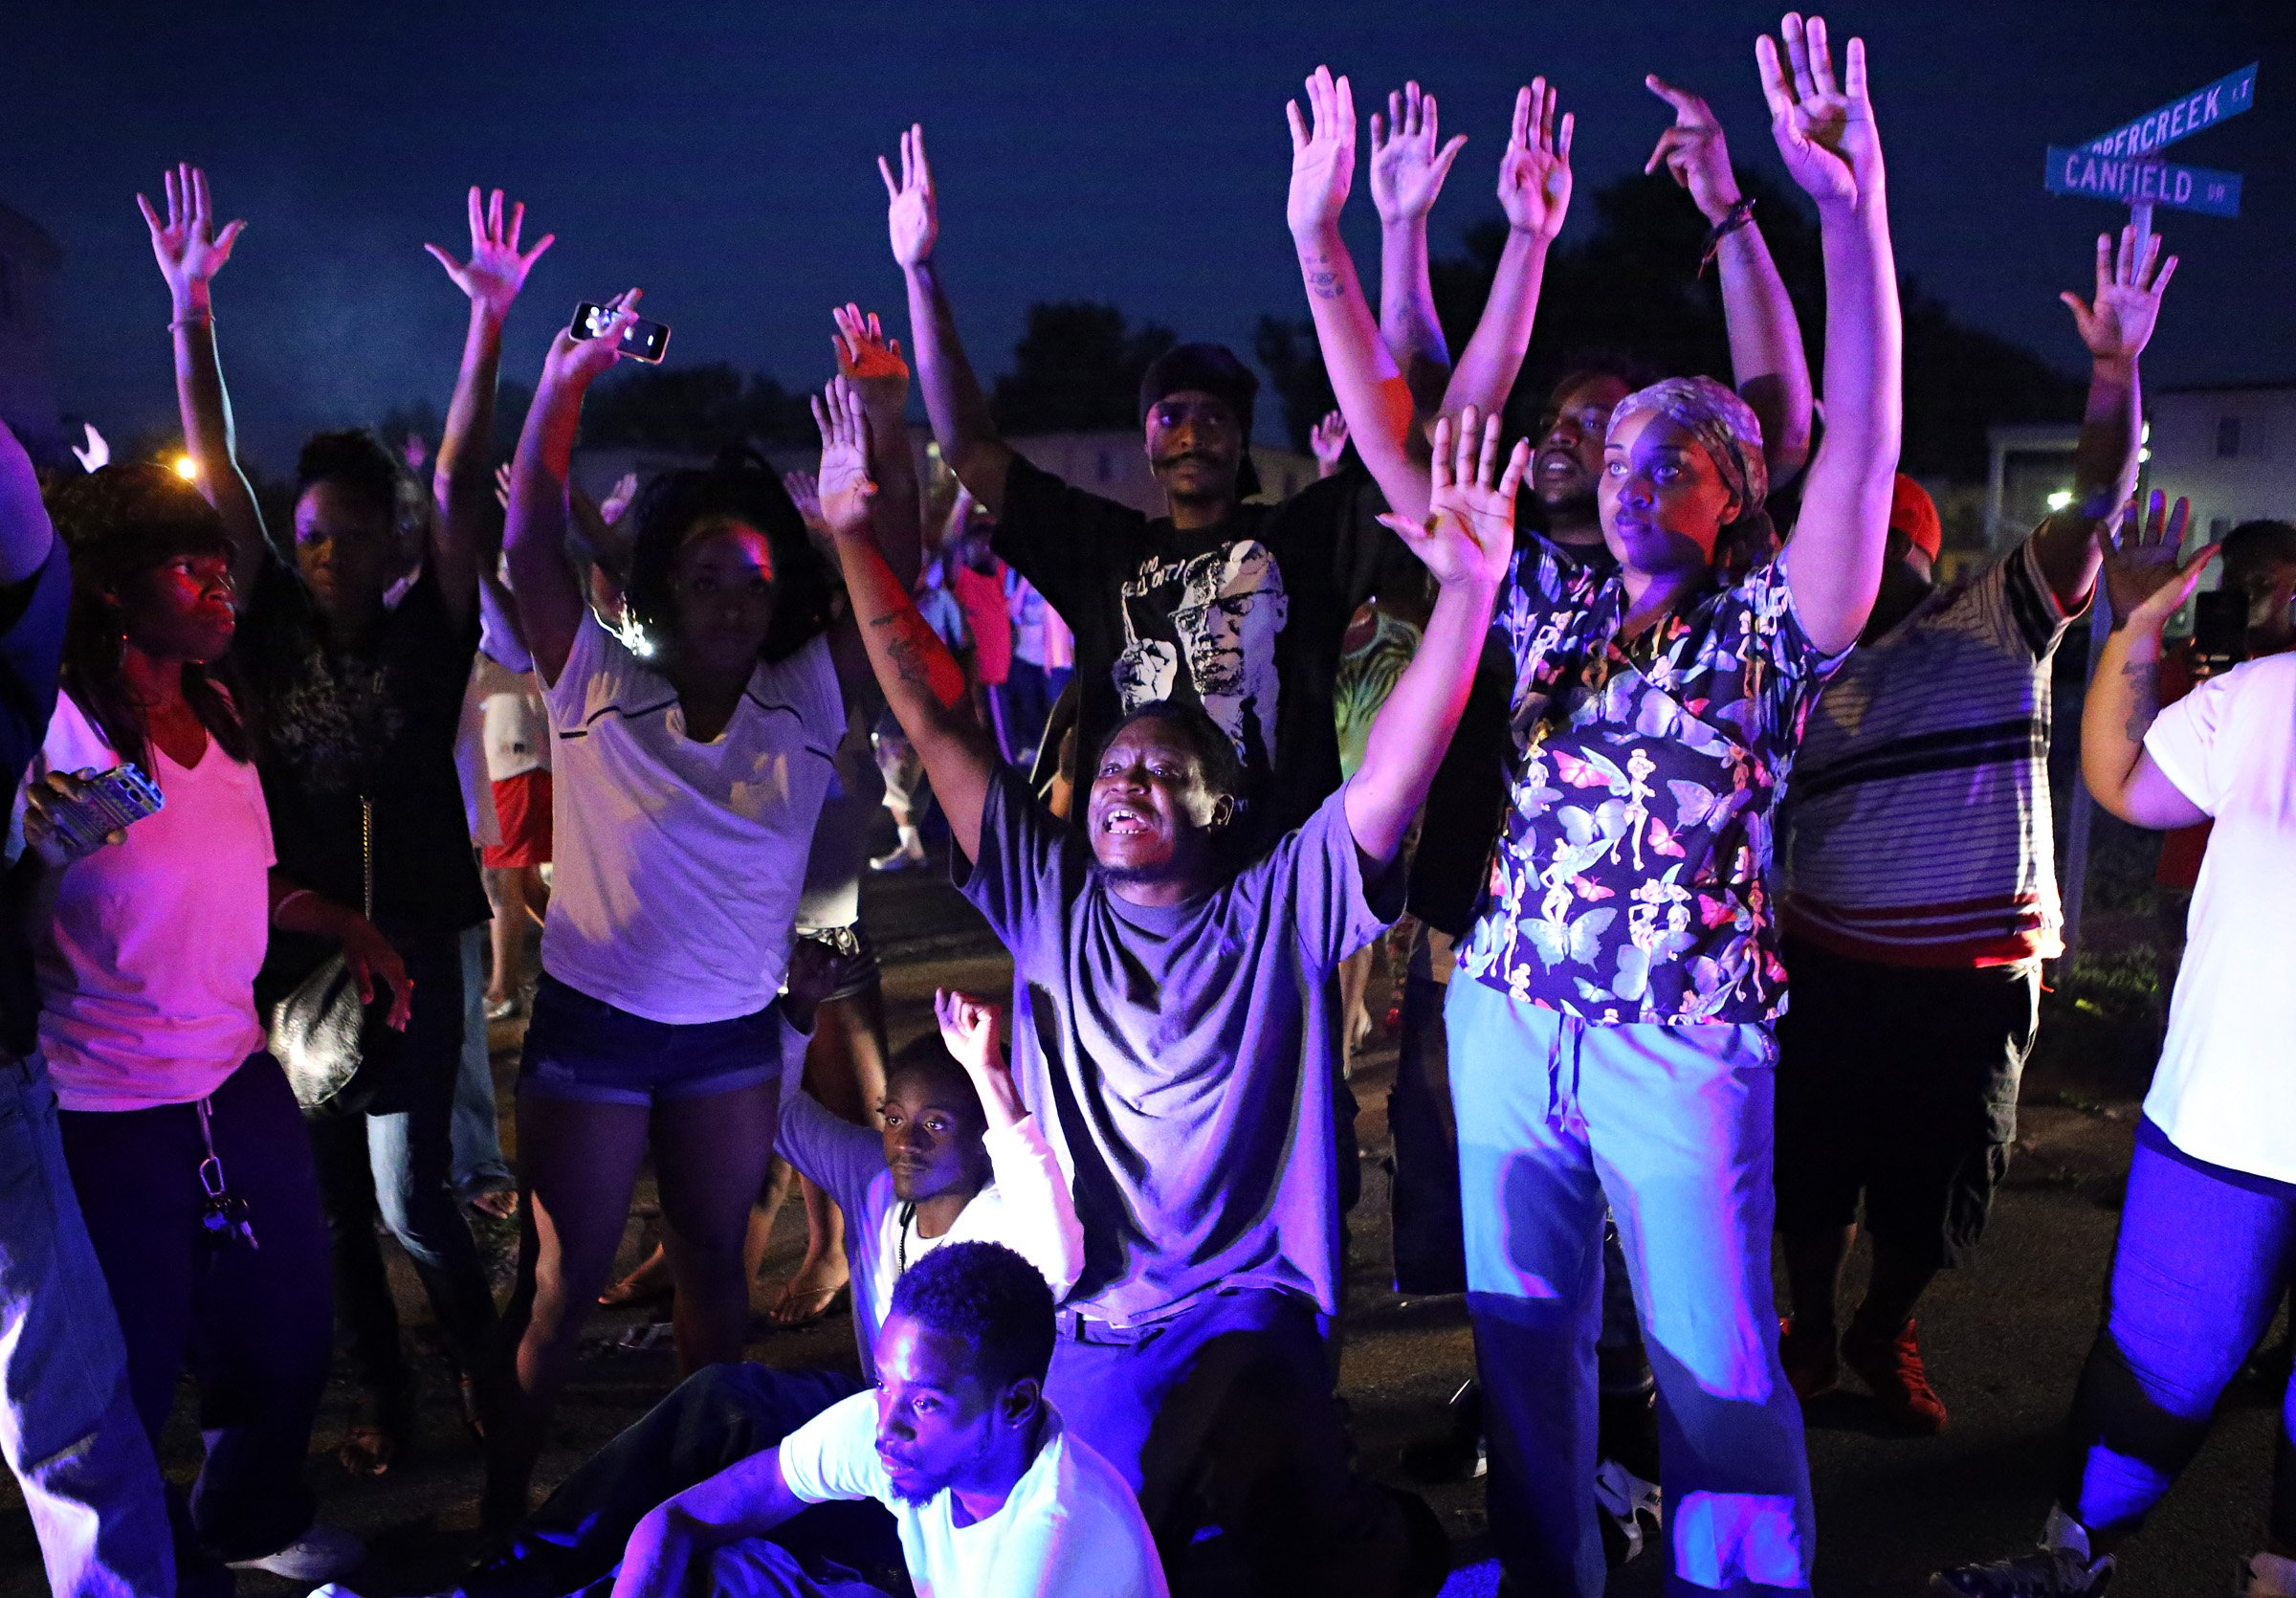 """""""Don't shoot us"""" cries out the crowd as they confront police officers arriving to break up a crowd on Canfield Dr. in Ferguson on Saturday, Aug. 9, 2014. Earlier in the day police had shot and killed an 18 year-old man on the street and the crowd of people were upset.  Photo By David Carson, dcarson@post-dispatch.com"""